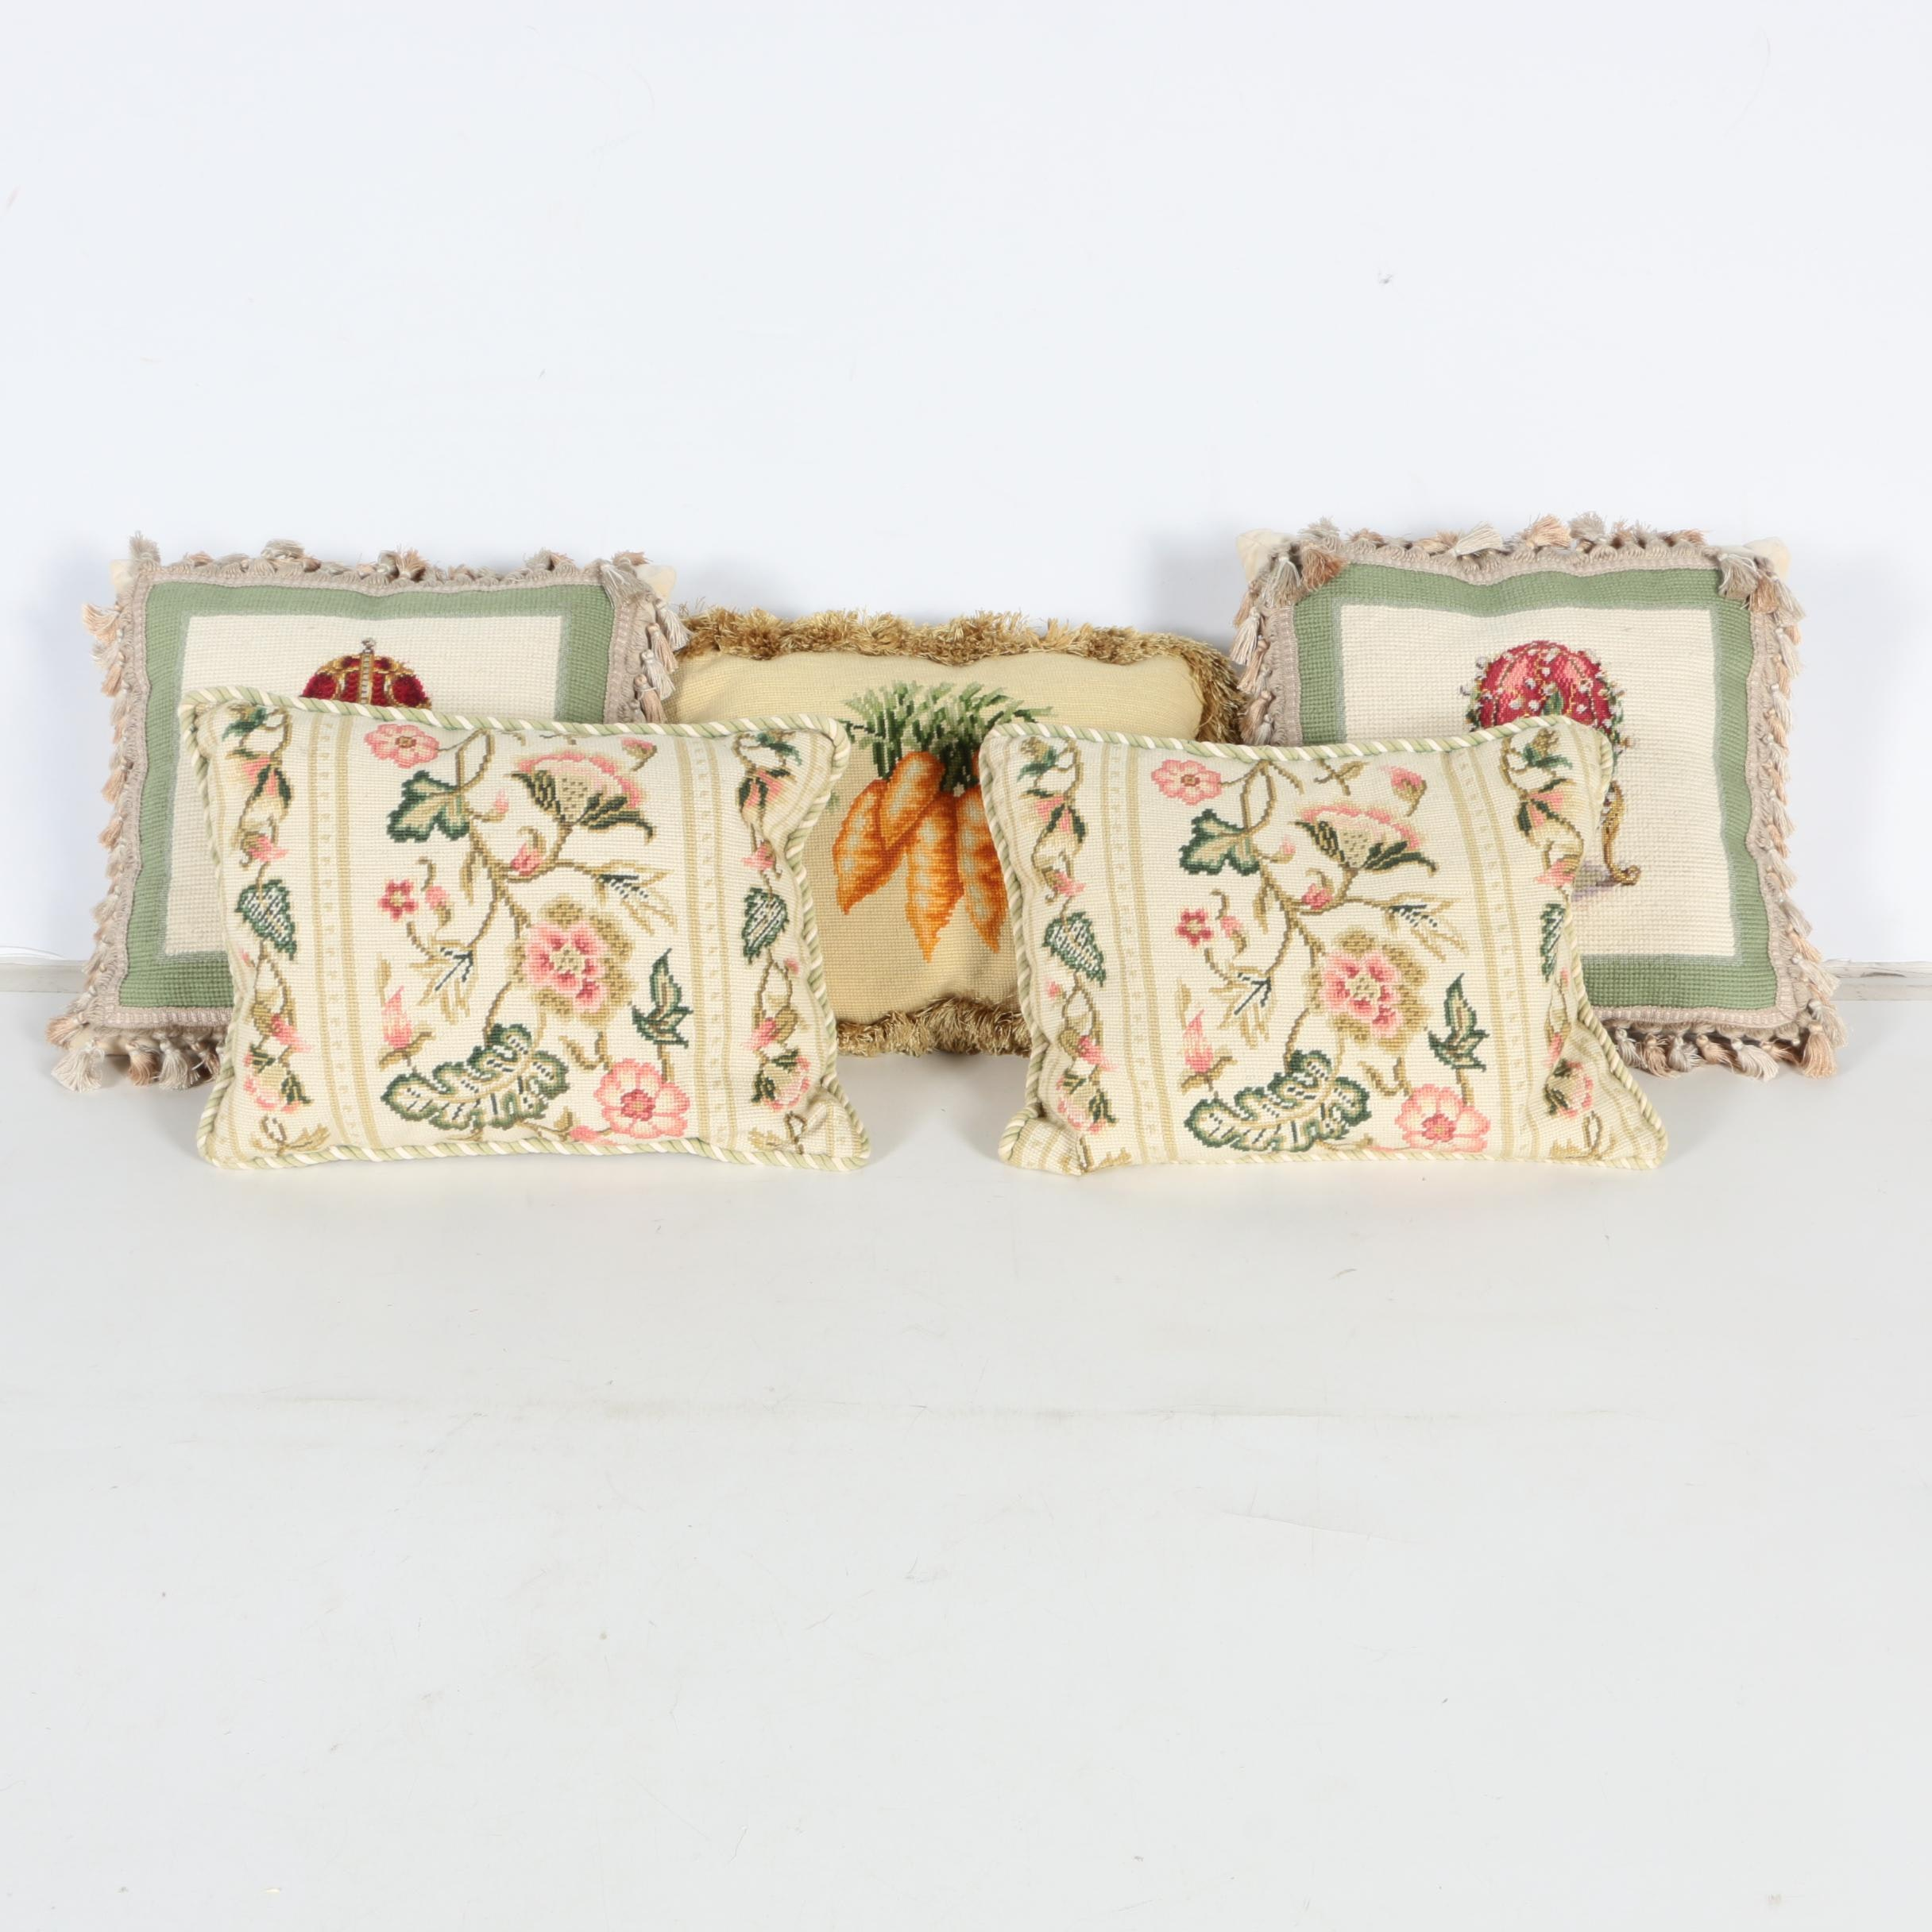 Collection of Katha Diddel Home Collection Handmade Needlepoint Pillows